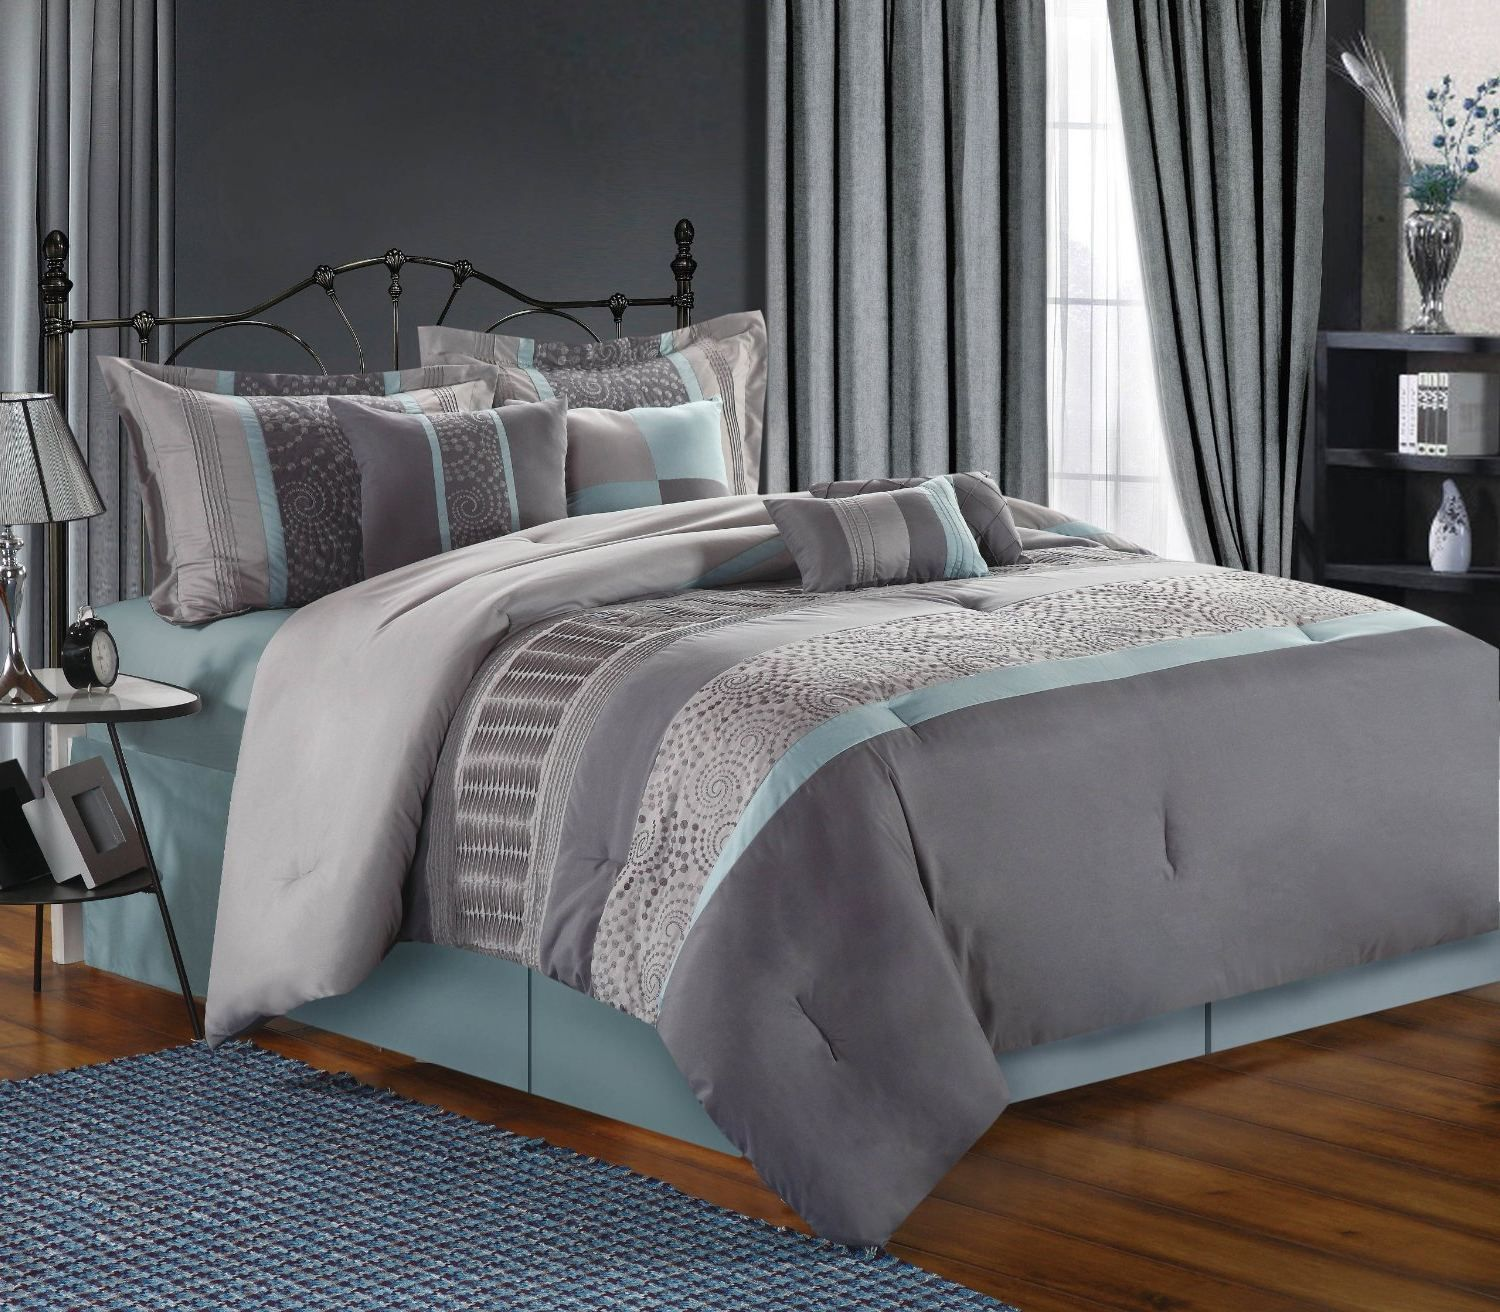 Image Result For Blue Gray Wall Light Blue Curtains Silver Gray Comforter Grey Colour Scheme Bedroom Blue Bedroom Grey Bedroom Colors